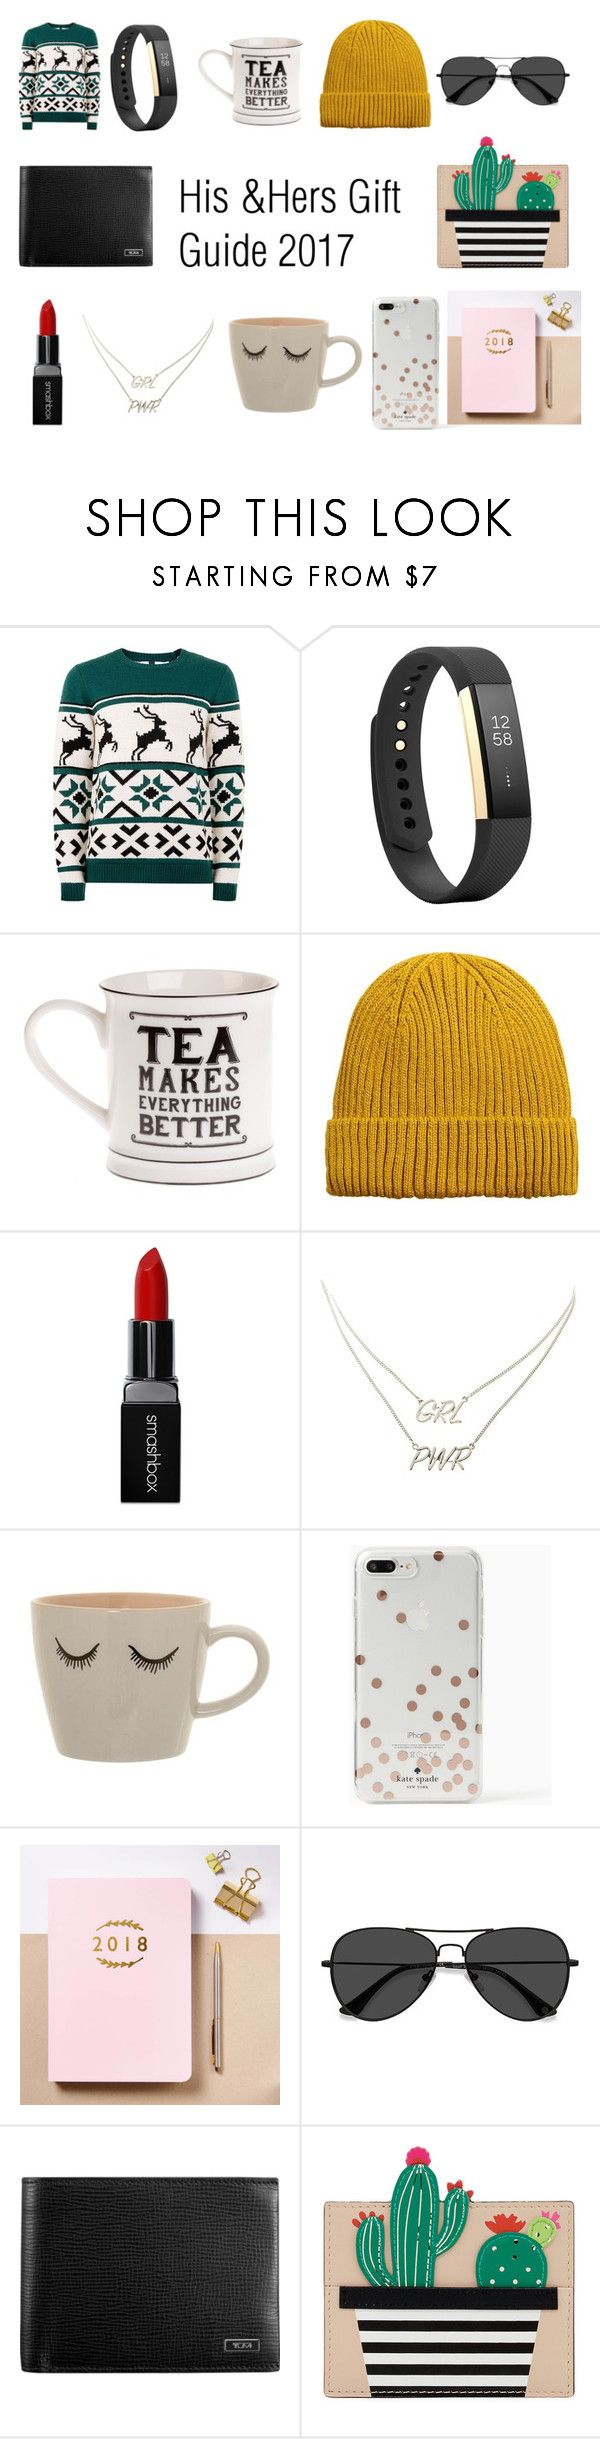 """His and Hers Gift Guide"" by hannahevickers on Polyvore featuring Topman, Fitbit, MANGO MAN, Smashbox, Charlotte Russe, Kate Spade, Posh Totty Designs, EyeBuyDirect.com and Tumi"